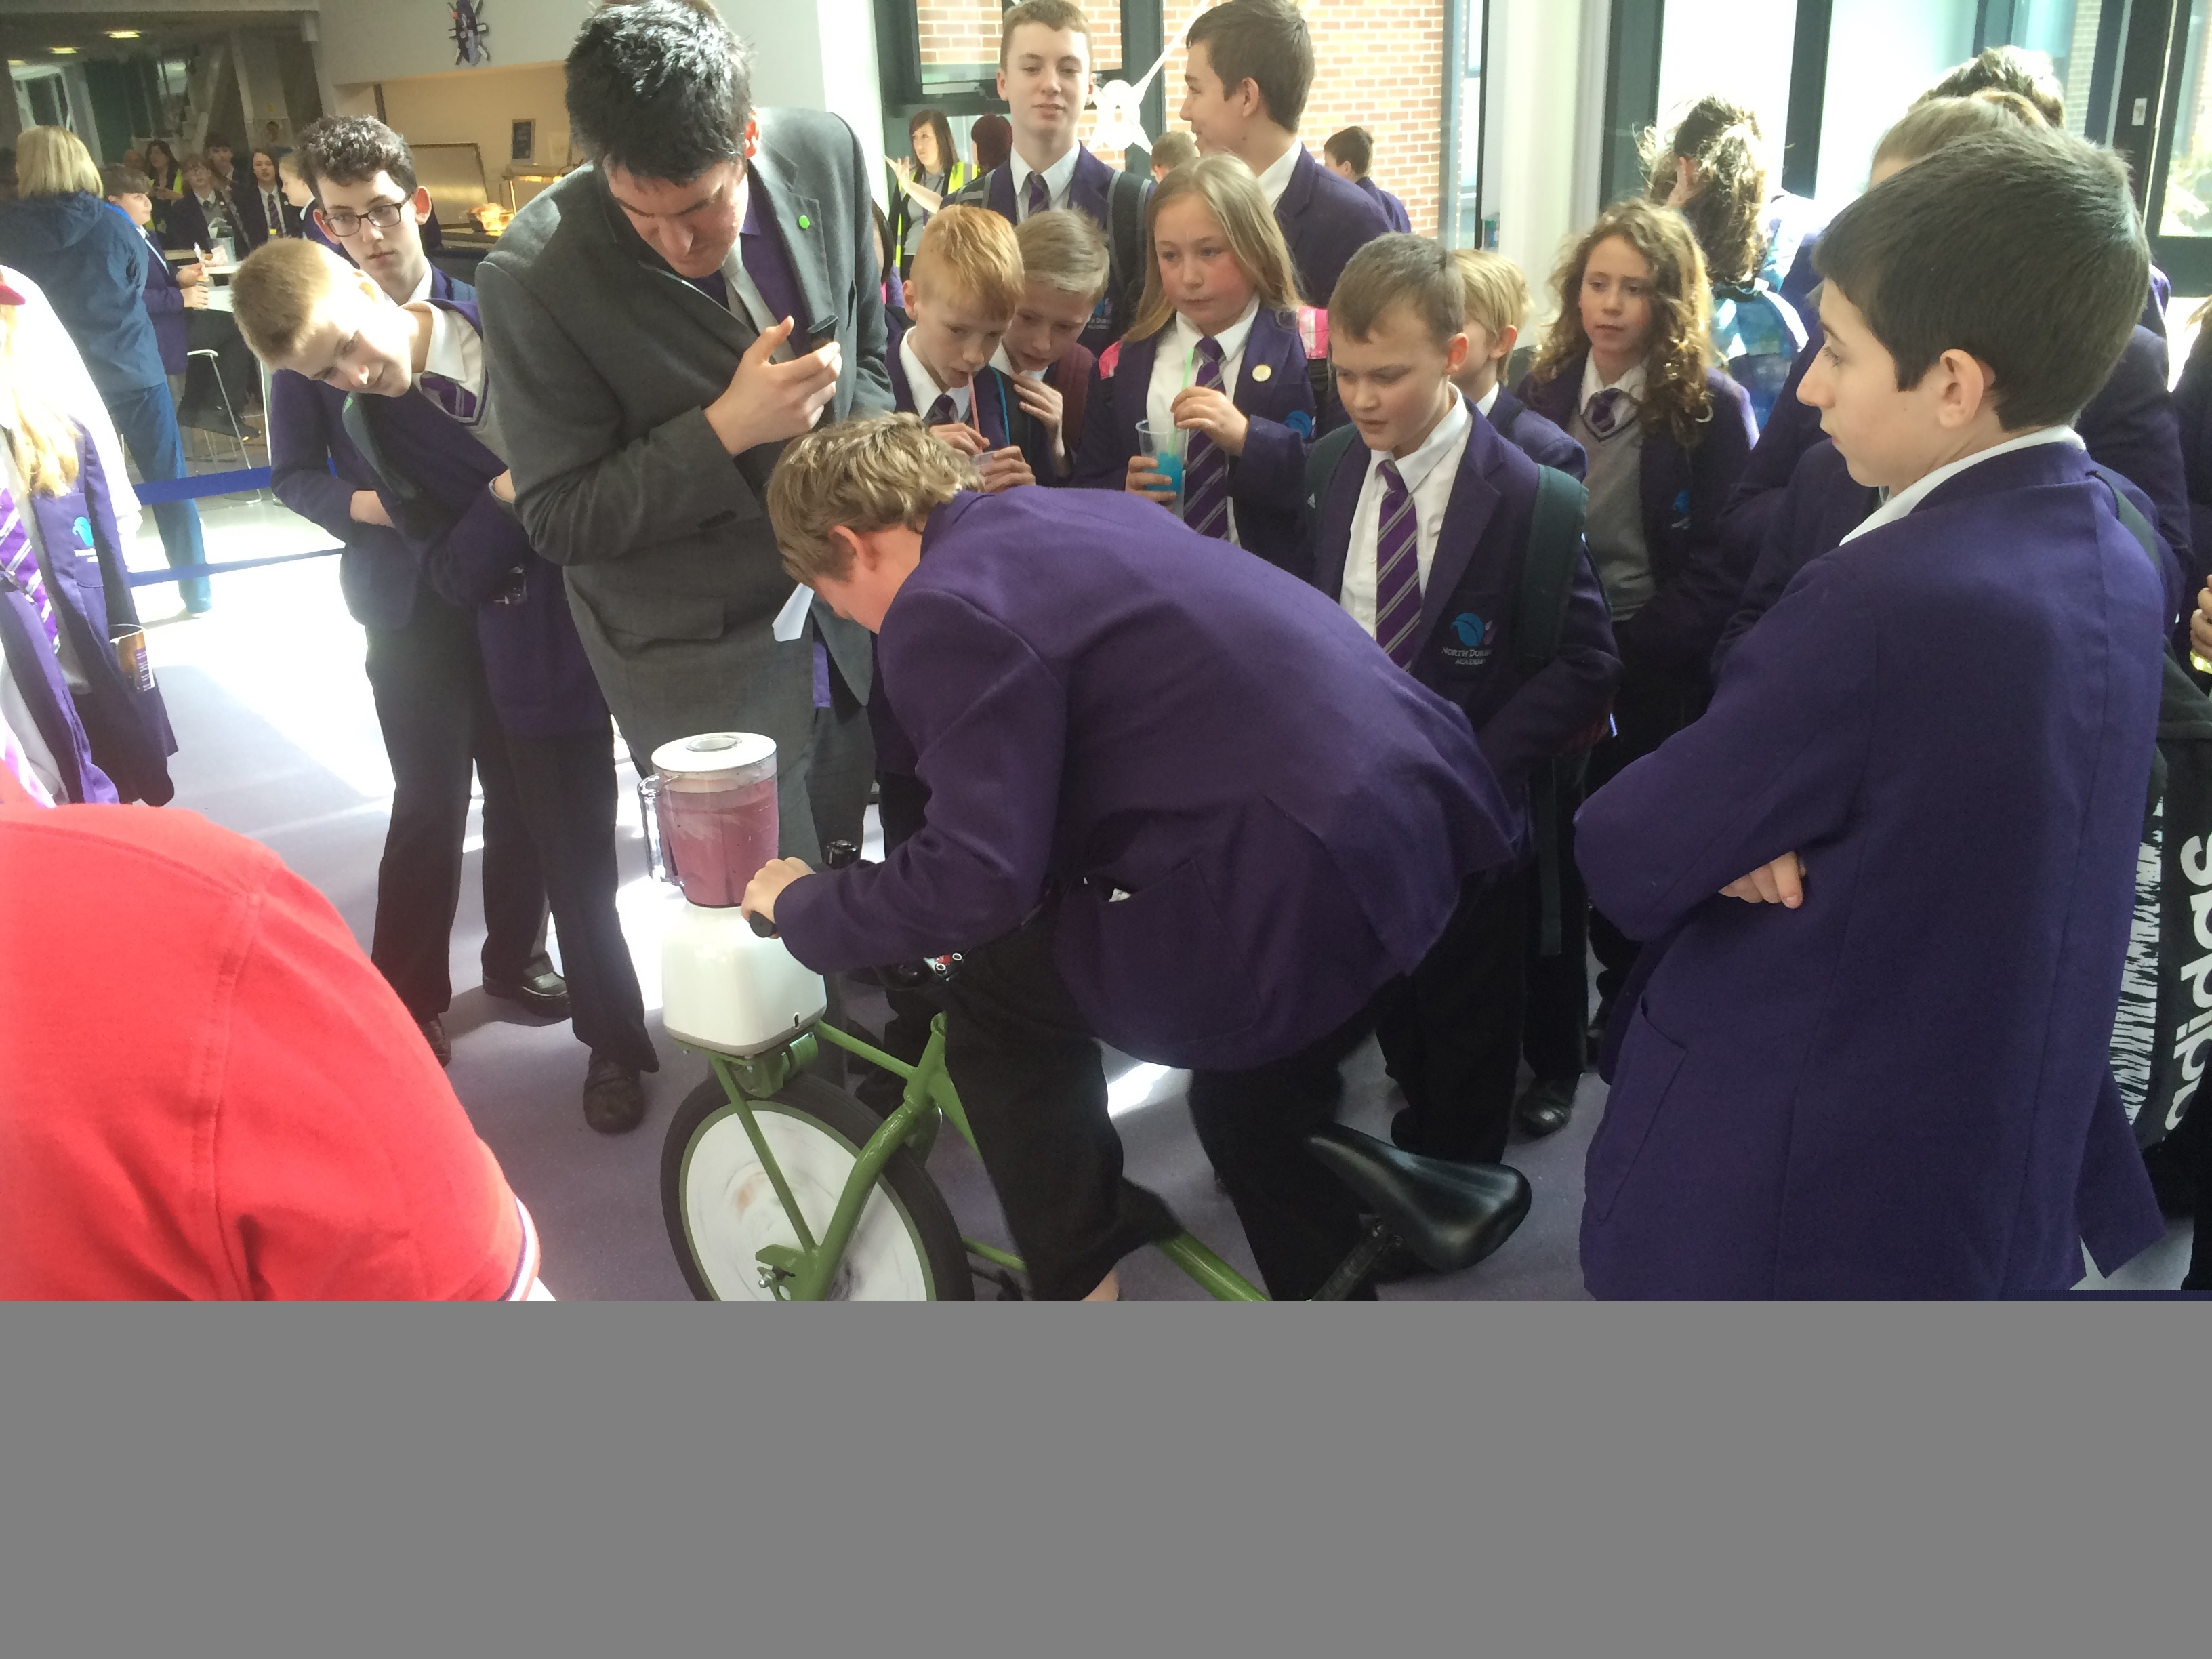 Competitive fun on a smoothie-maker bike during Grand Prix Day